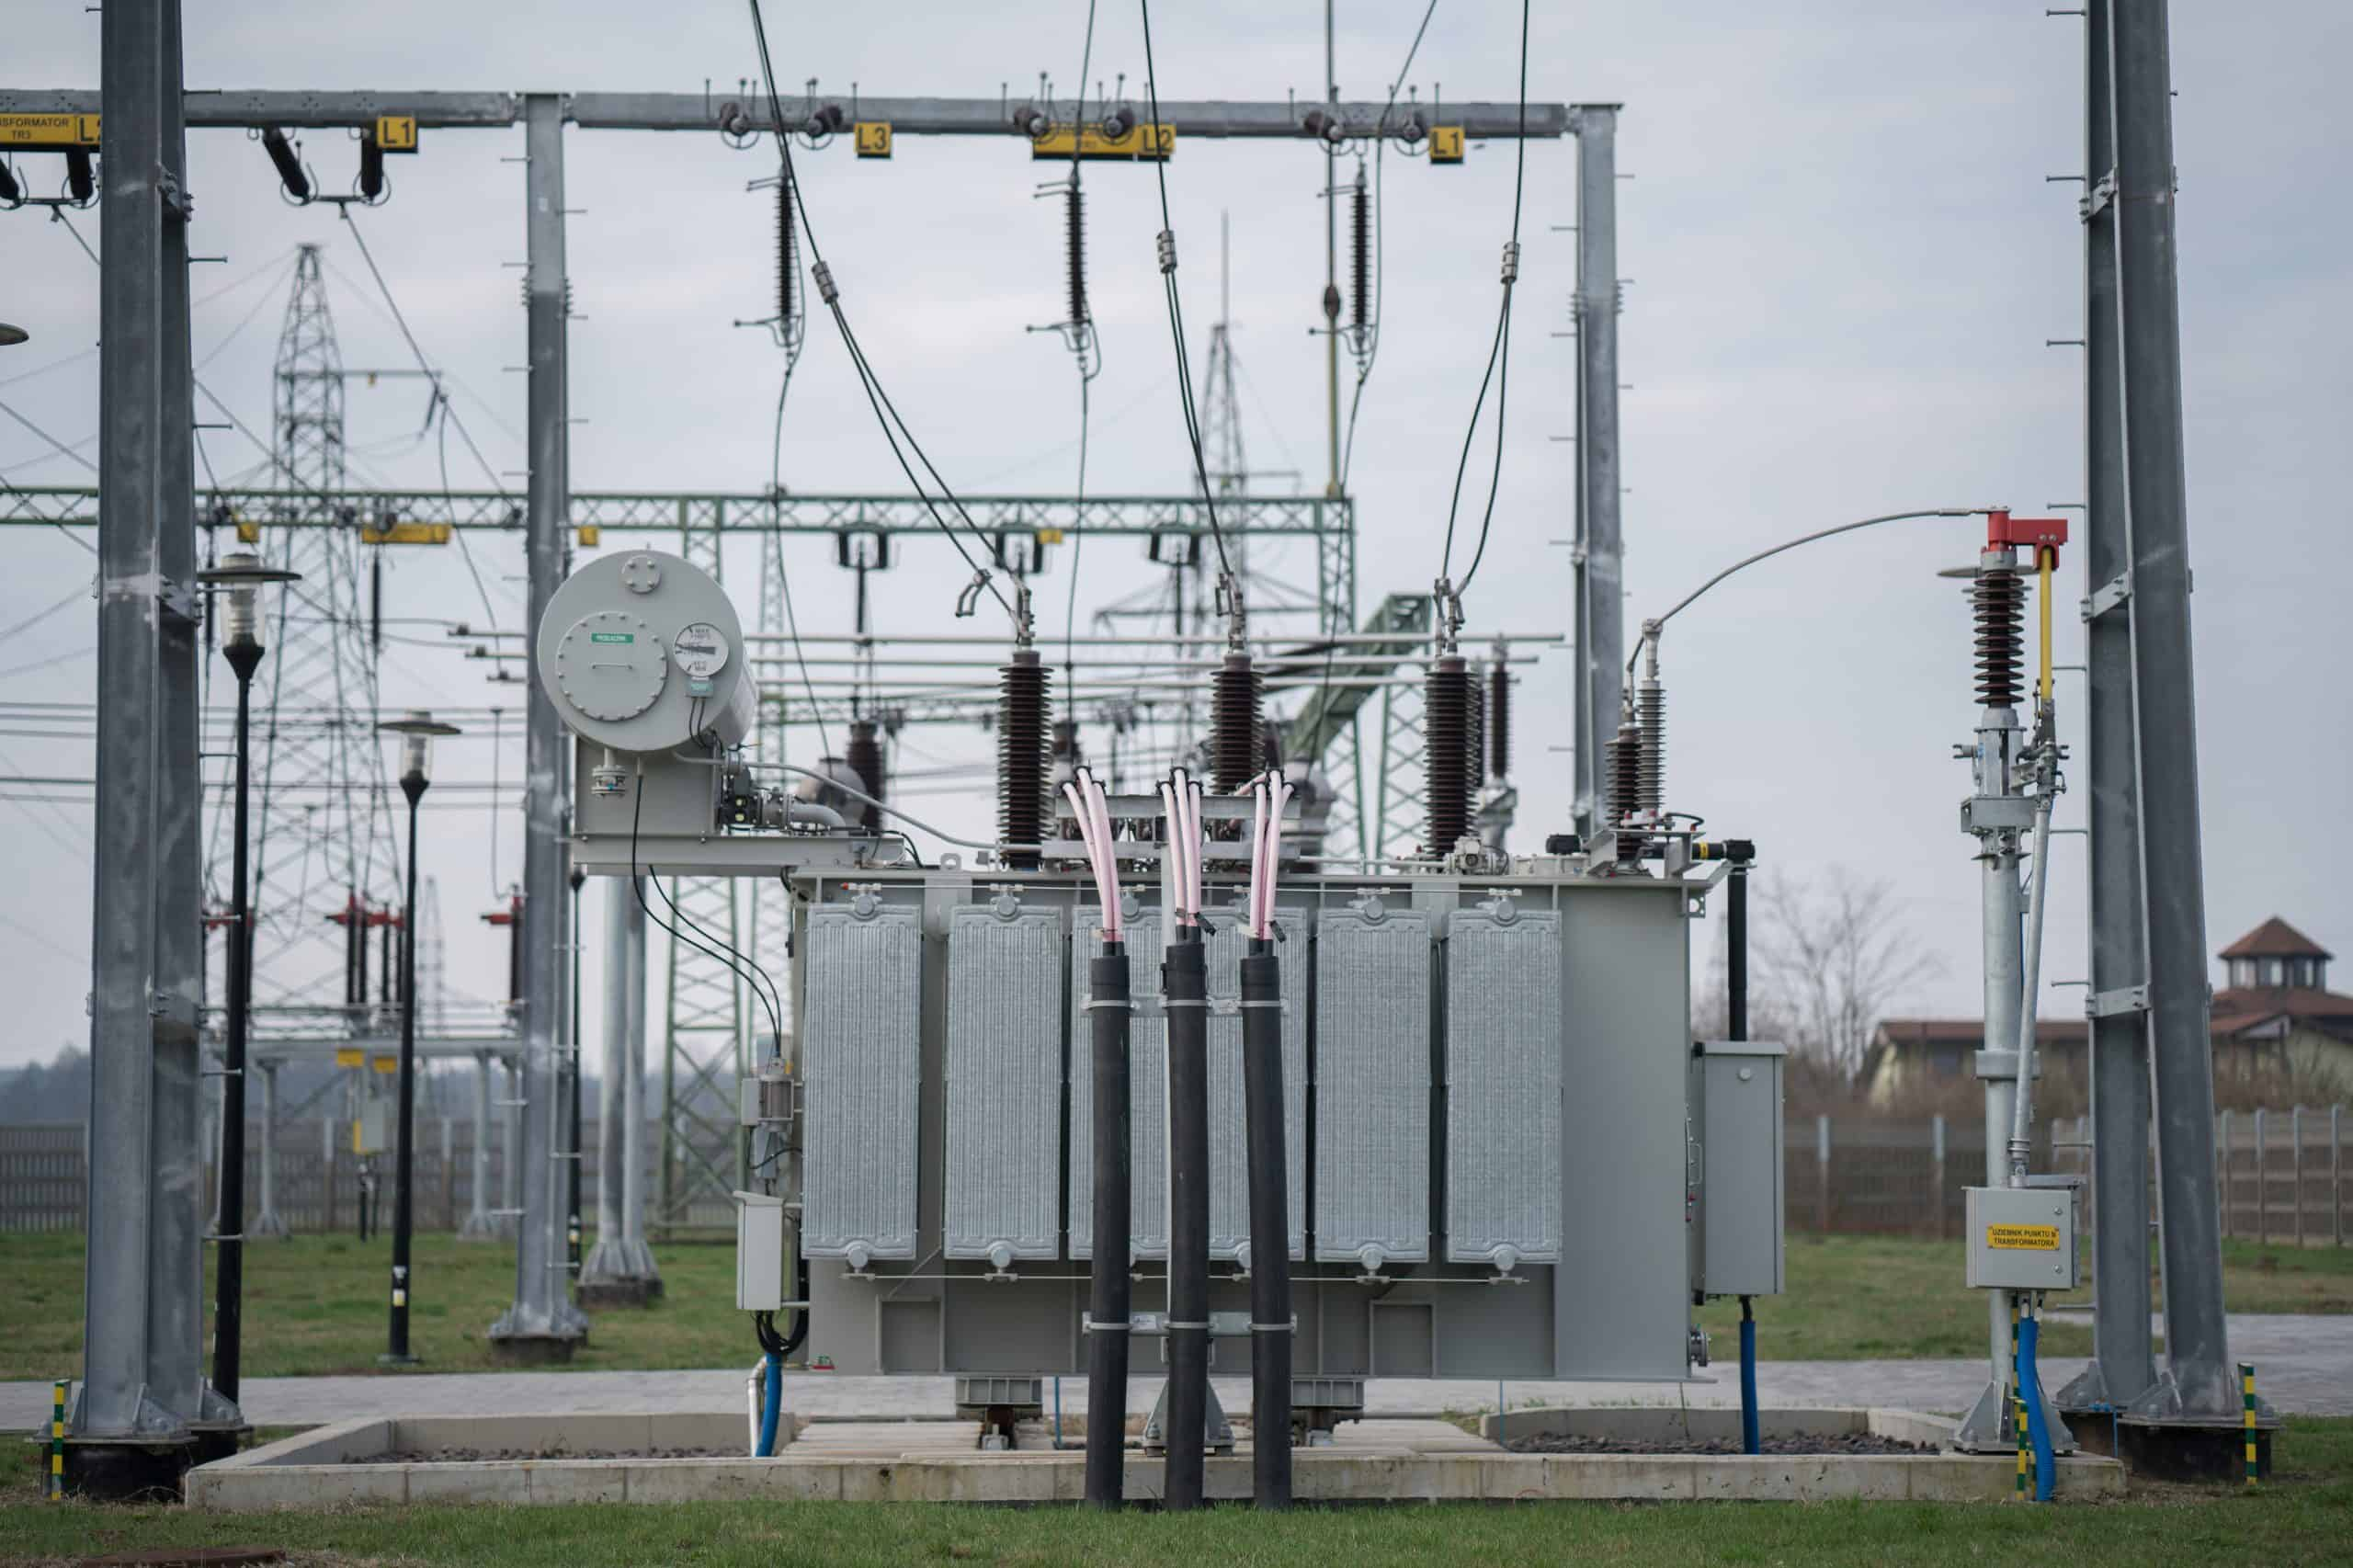 Transformer power distribution